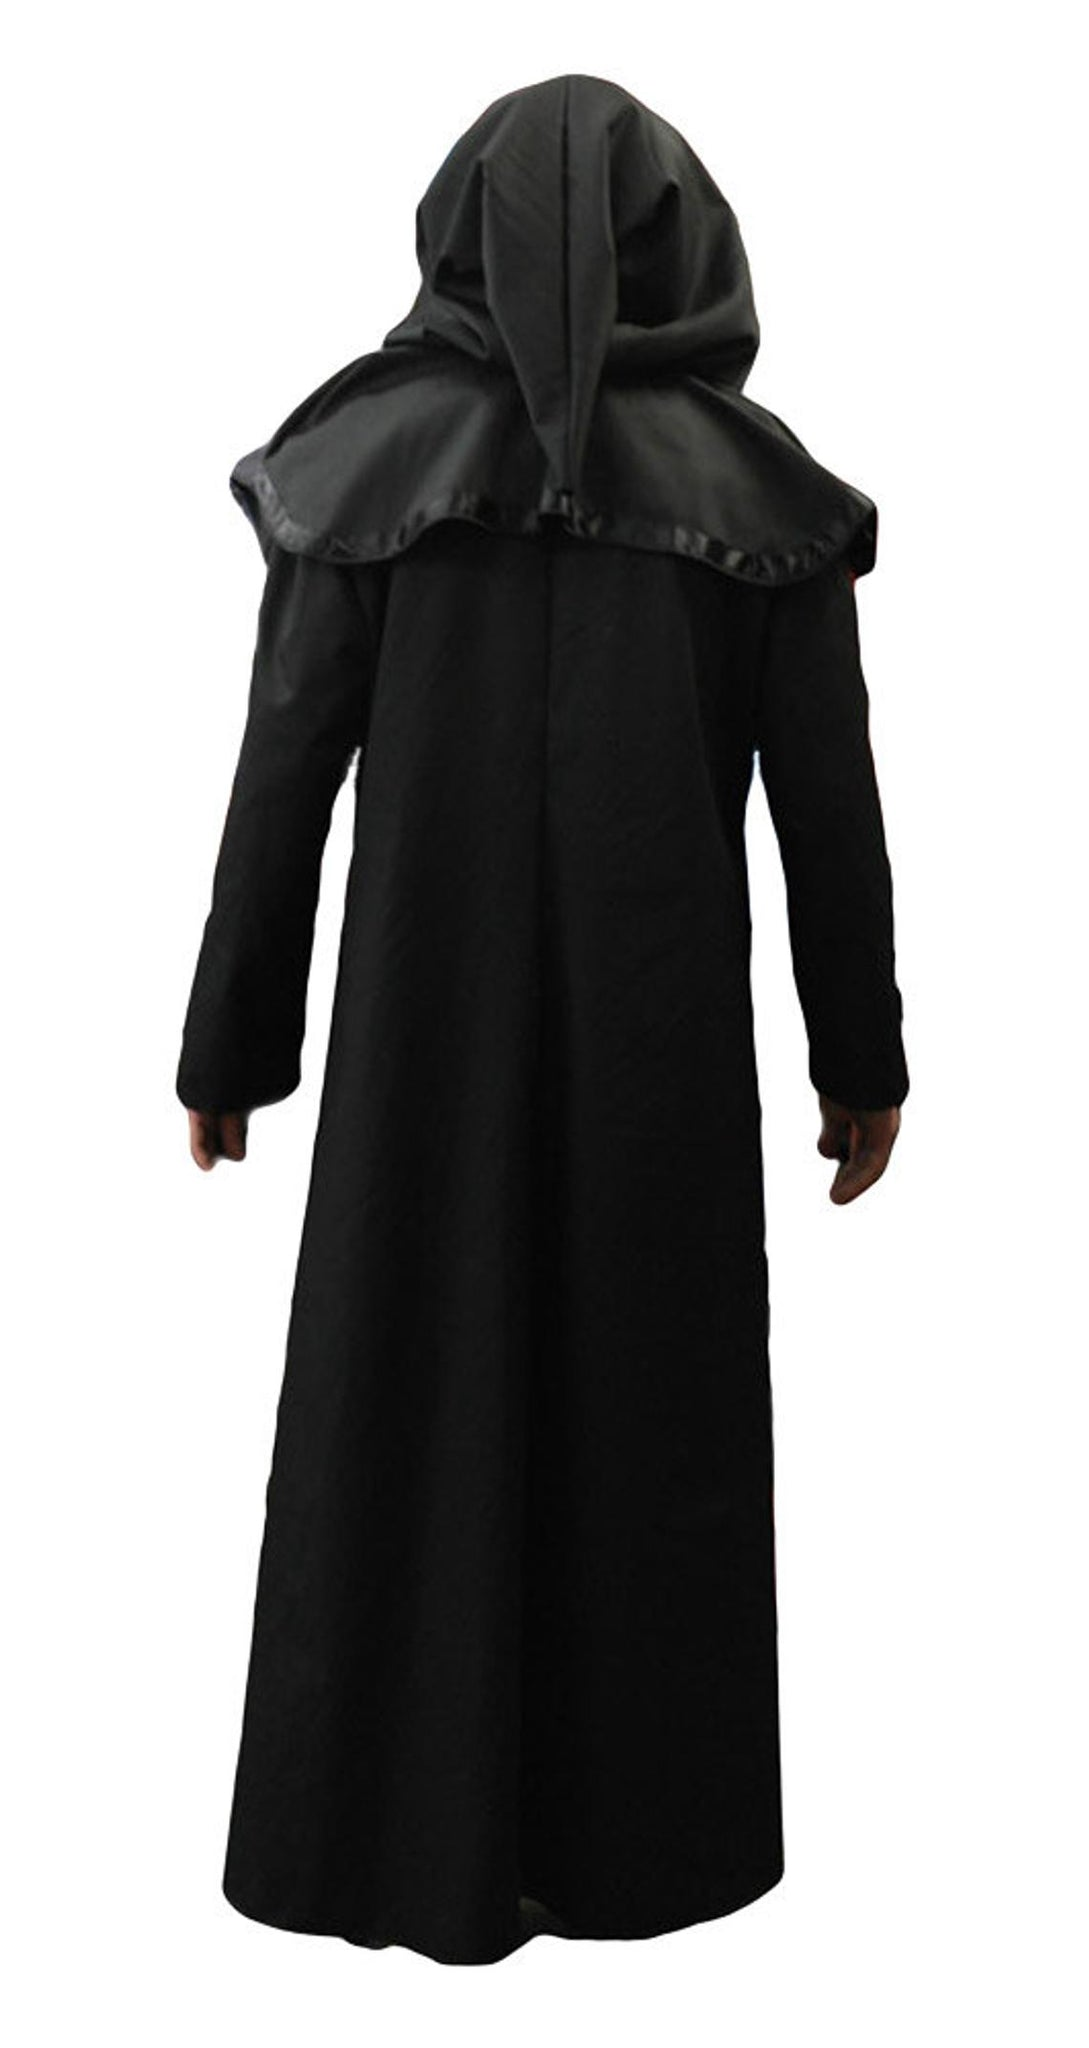 Drill Ghost Nameless Ghoul Robe Coat Costume